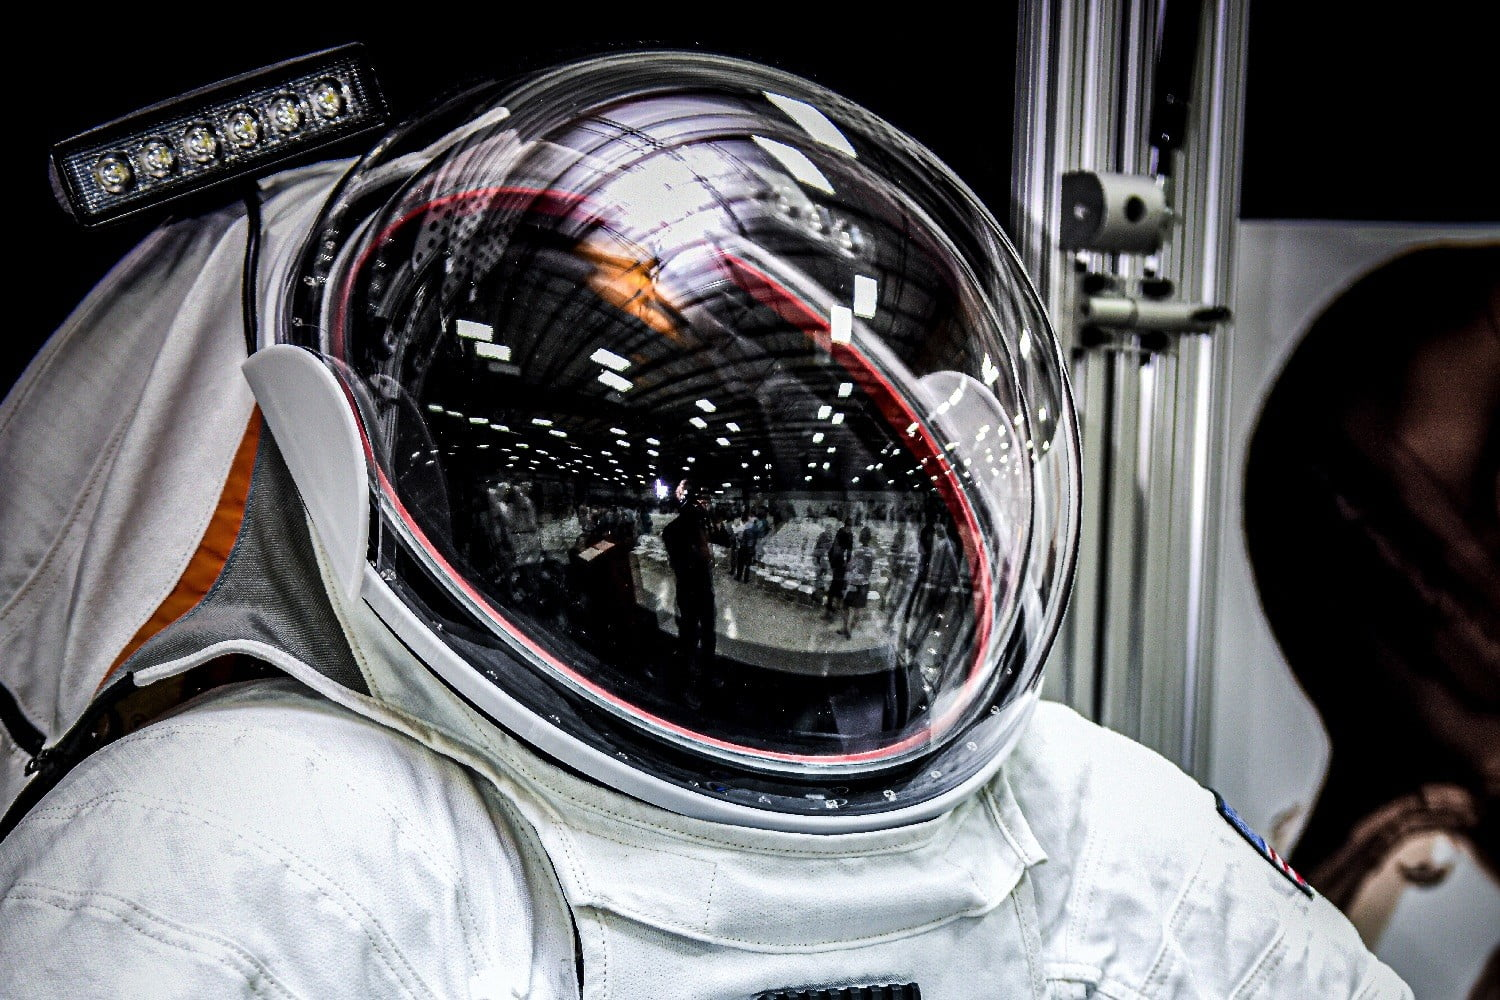 Meet Astro, the next-gen spacesuit designed for the moon, Mars, and beyond